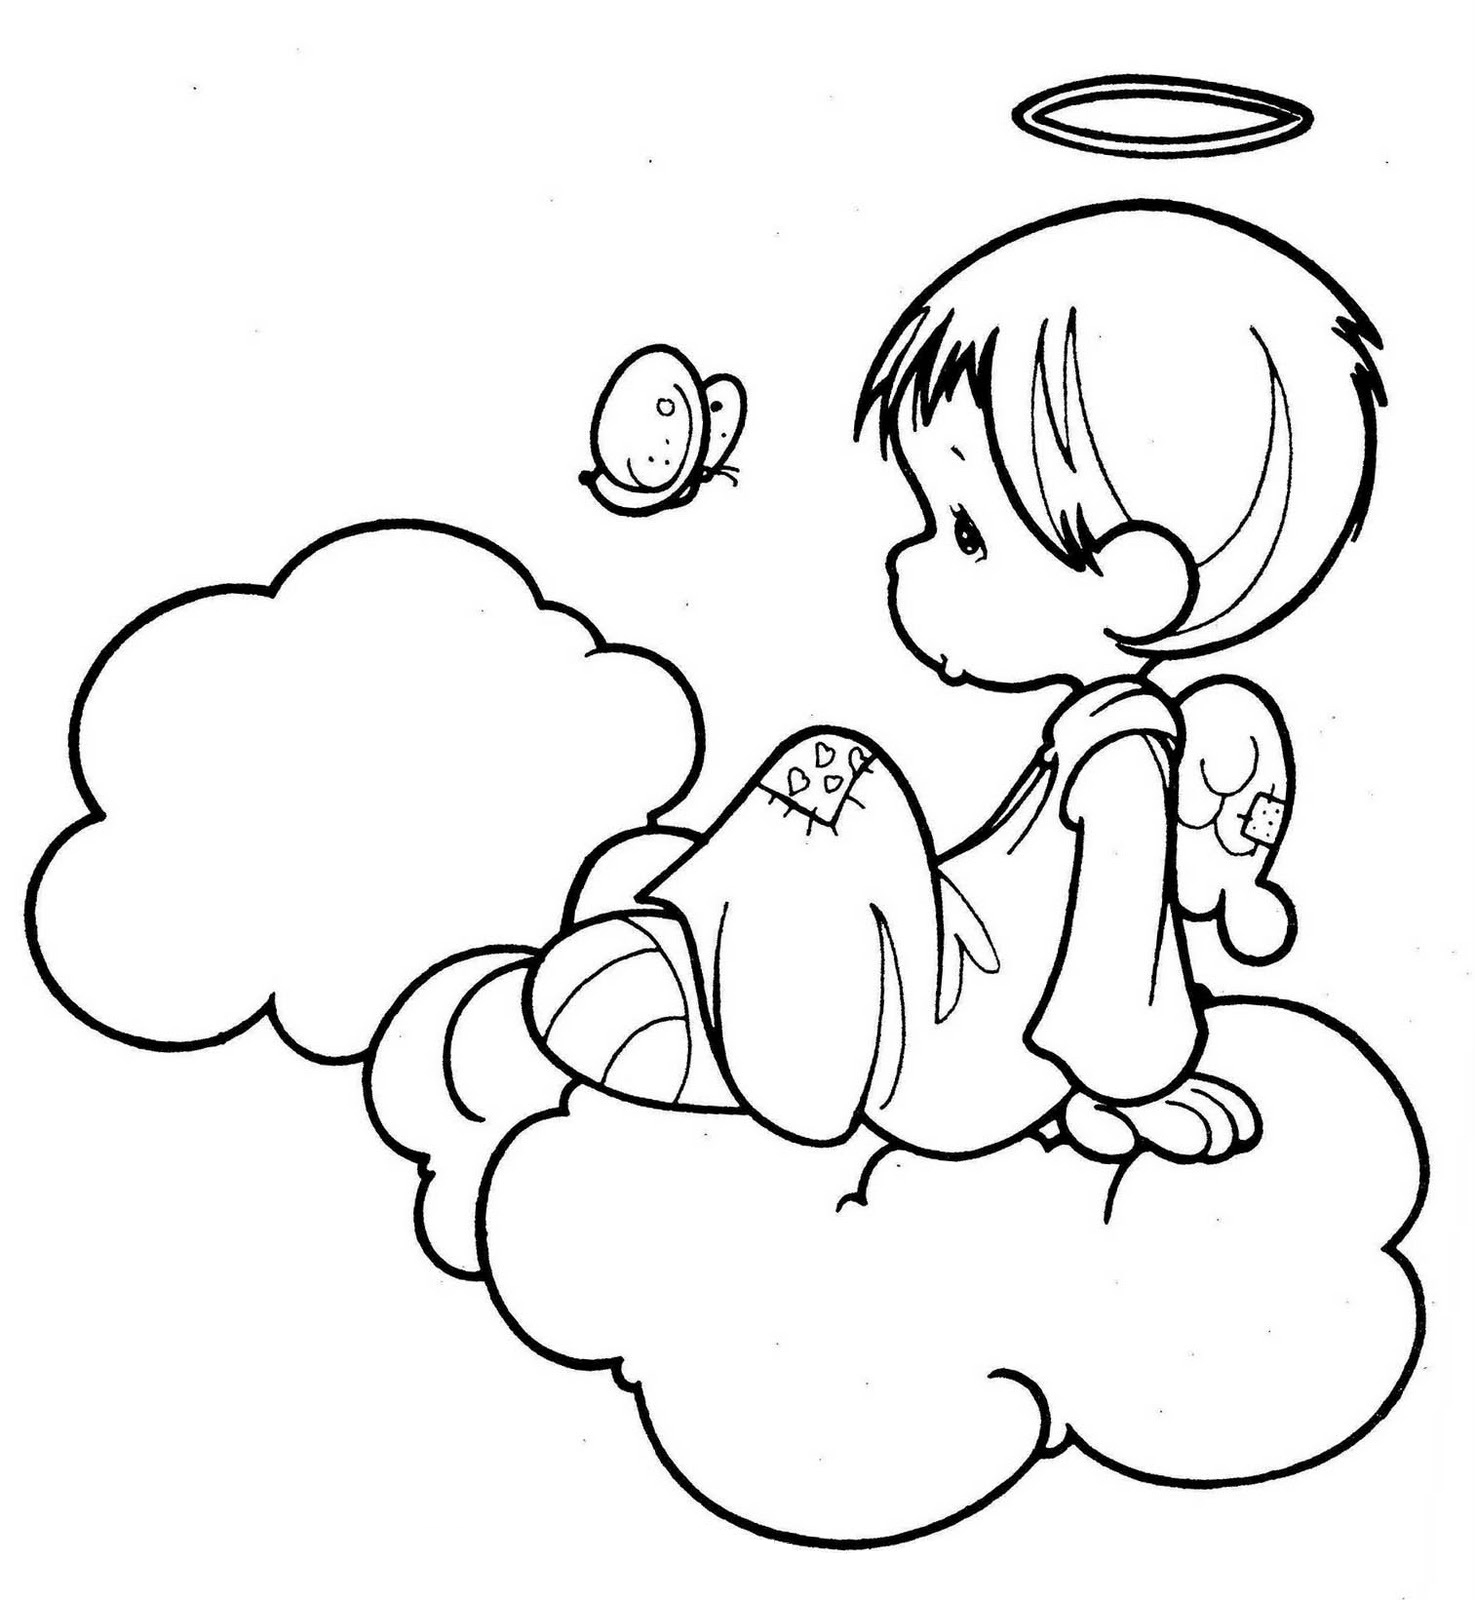 angel coloring page angel coloring pages coloringrocks angel page coloring